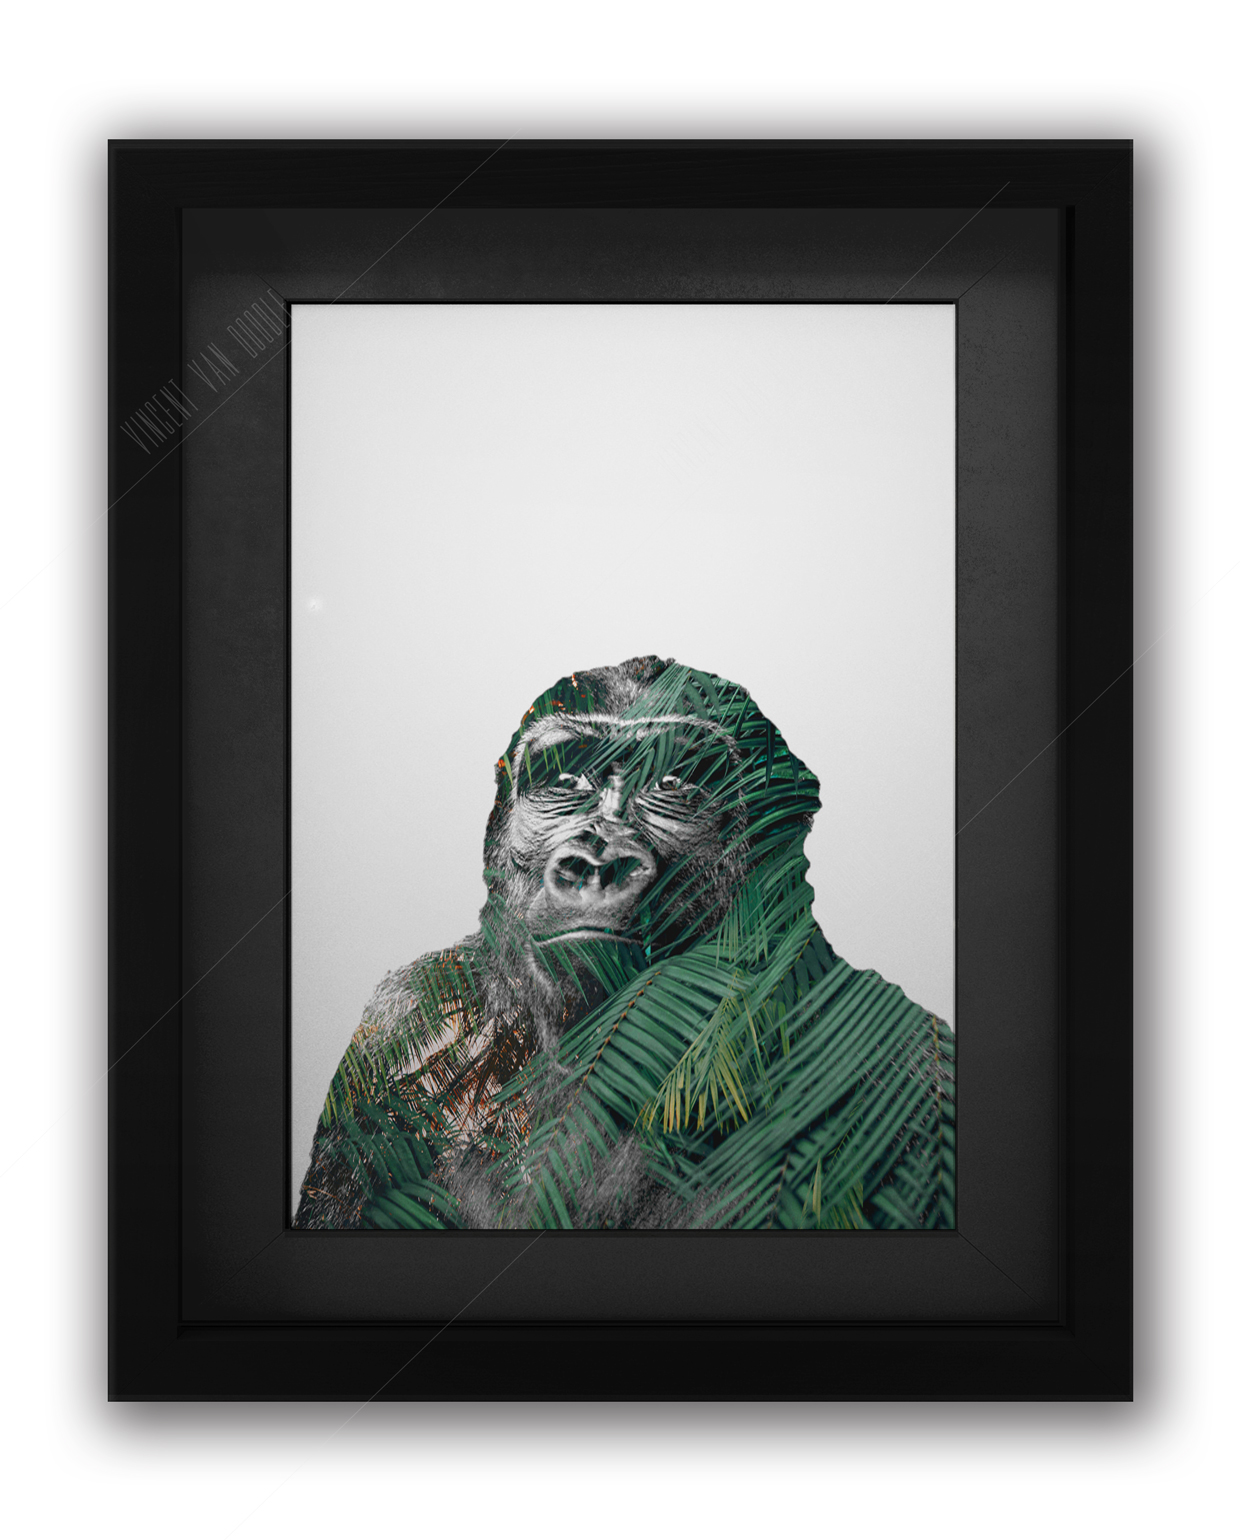 Gorilla Framed Black